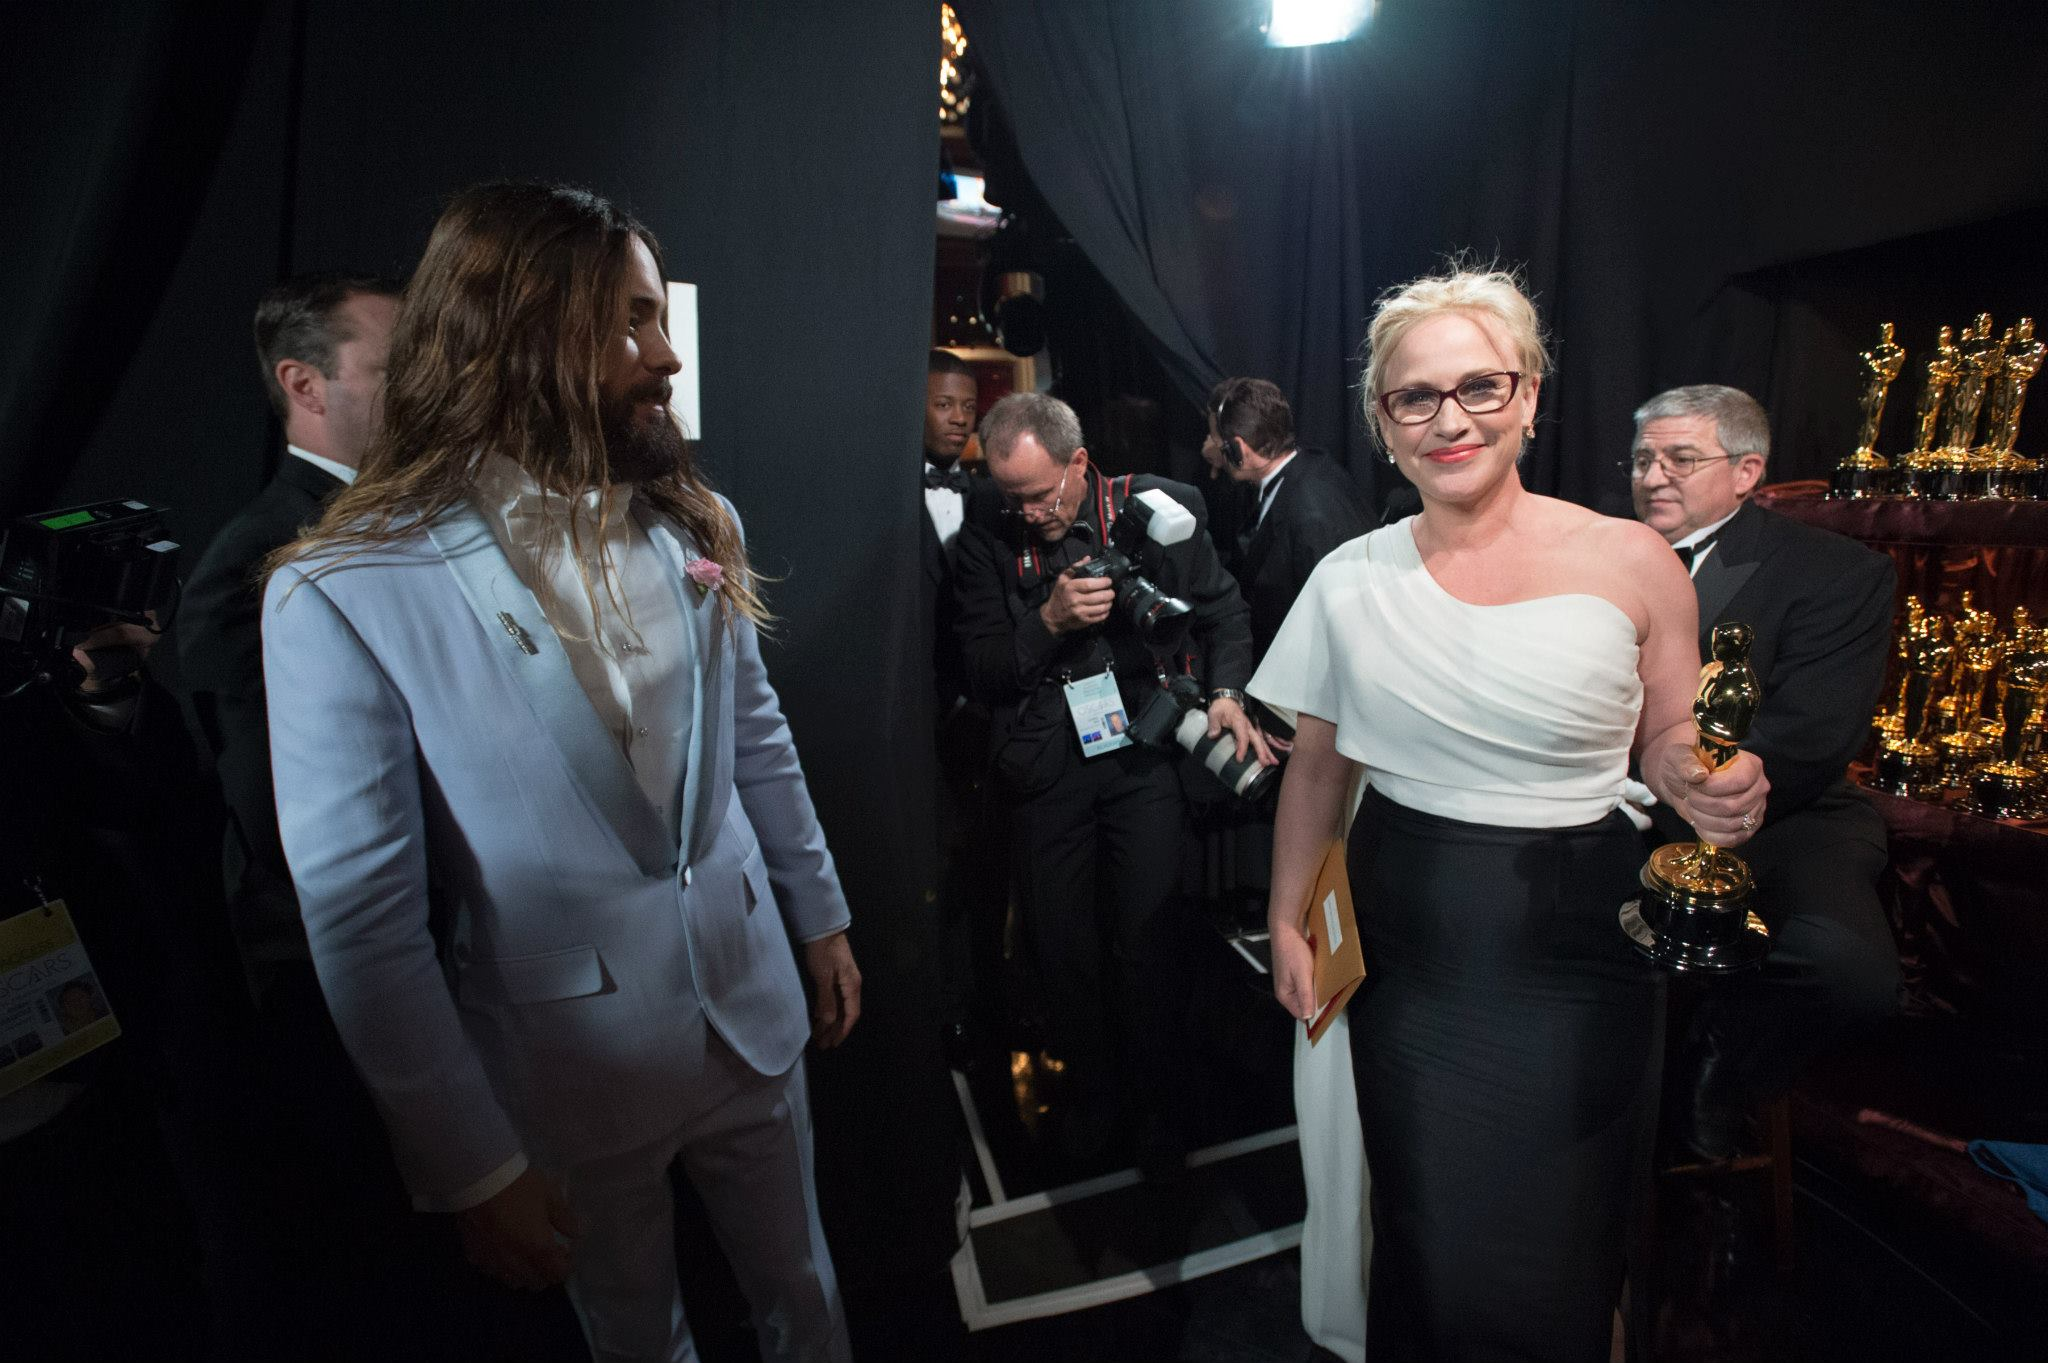 OSCARS 2015 - Patricia Arquette best supporting actress with Jared Leto - Go with the Blog